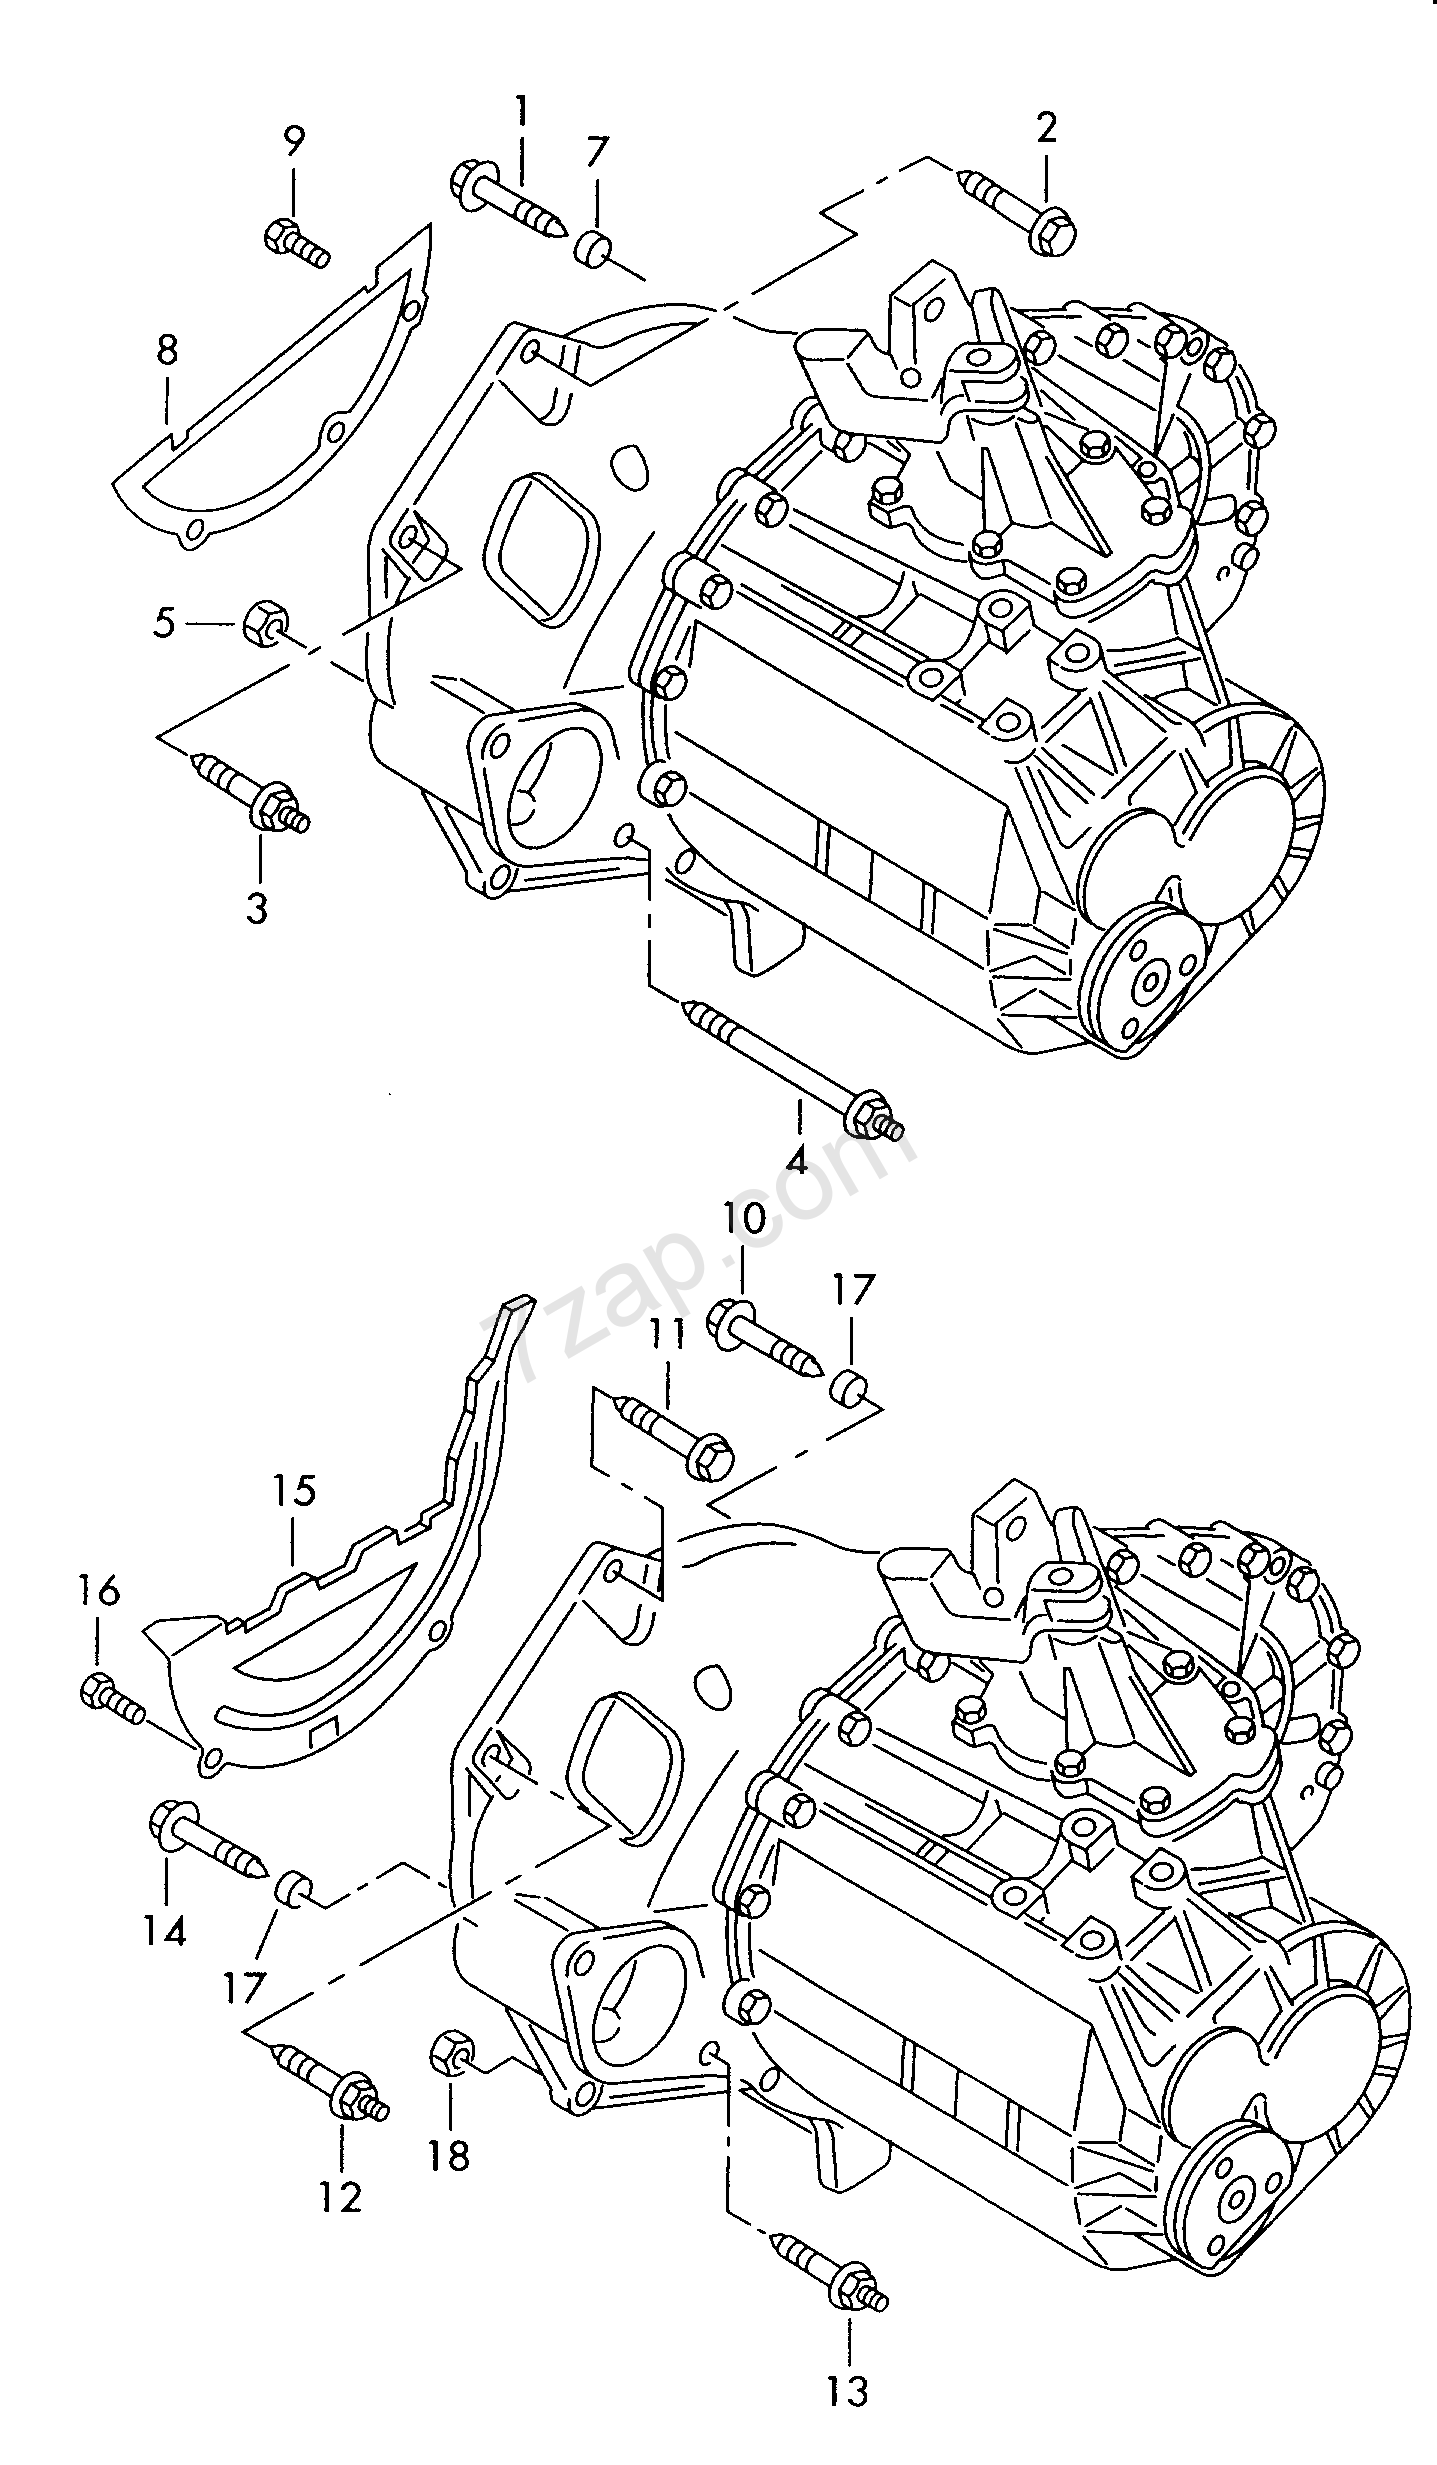 mounting parts for engine and transmission; for 5